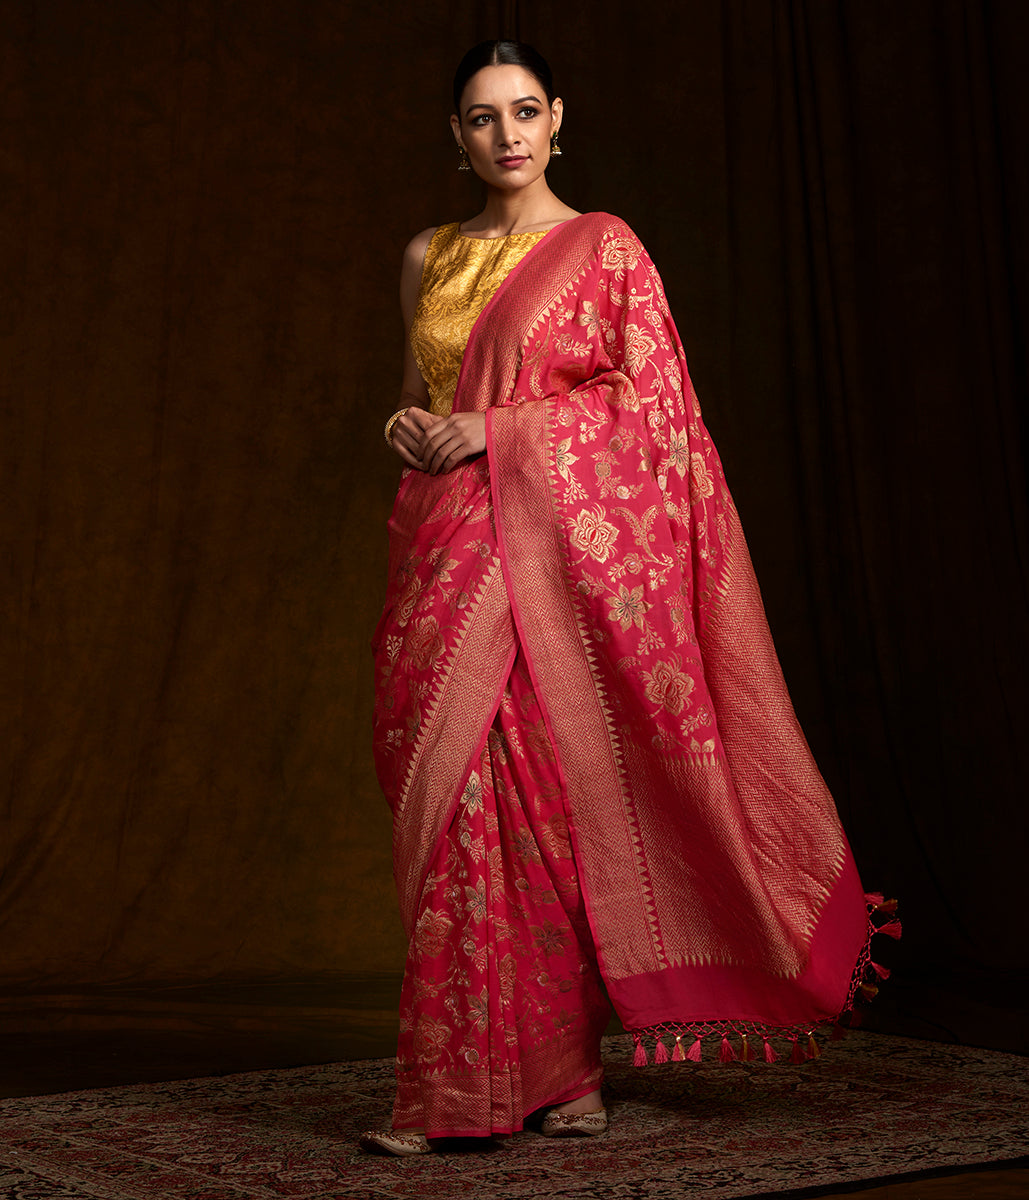 Coral Red Handwoven Banarasi georgette saree with meenakari jaal